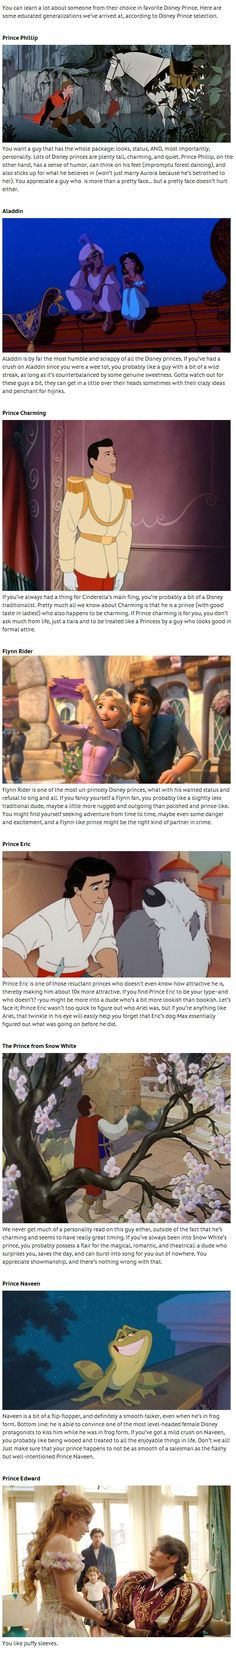 Oh my gosh. Prince Edward. Indefinitely. But seriously, Flynn Rider. He took a girl he barely knew, helped her out, and was willing to die for her because he had secretly fallen in love.